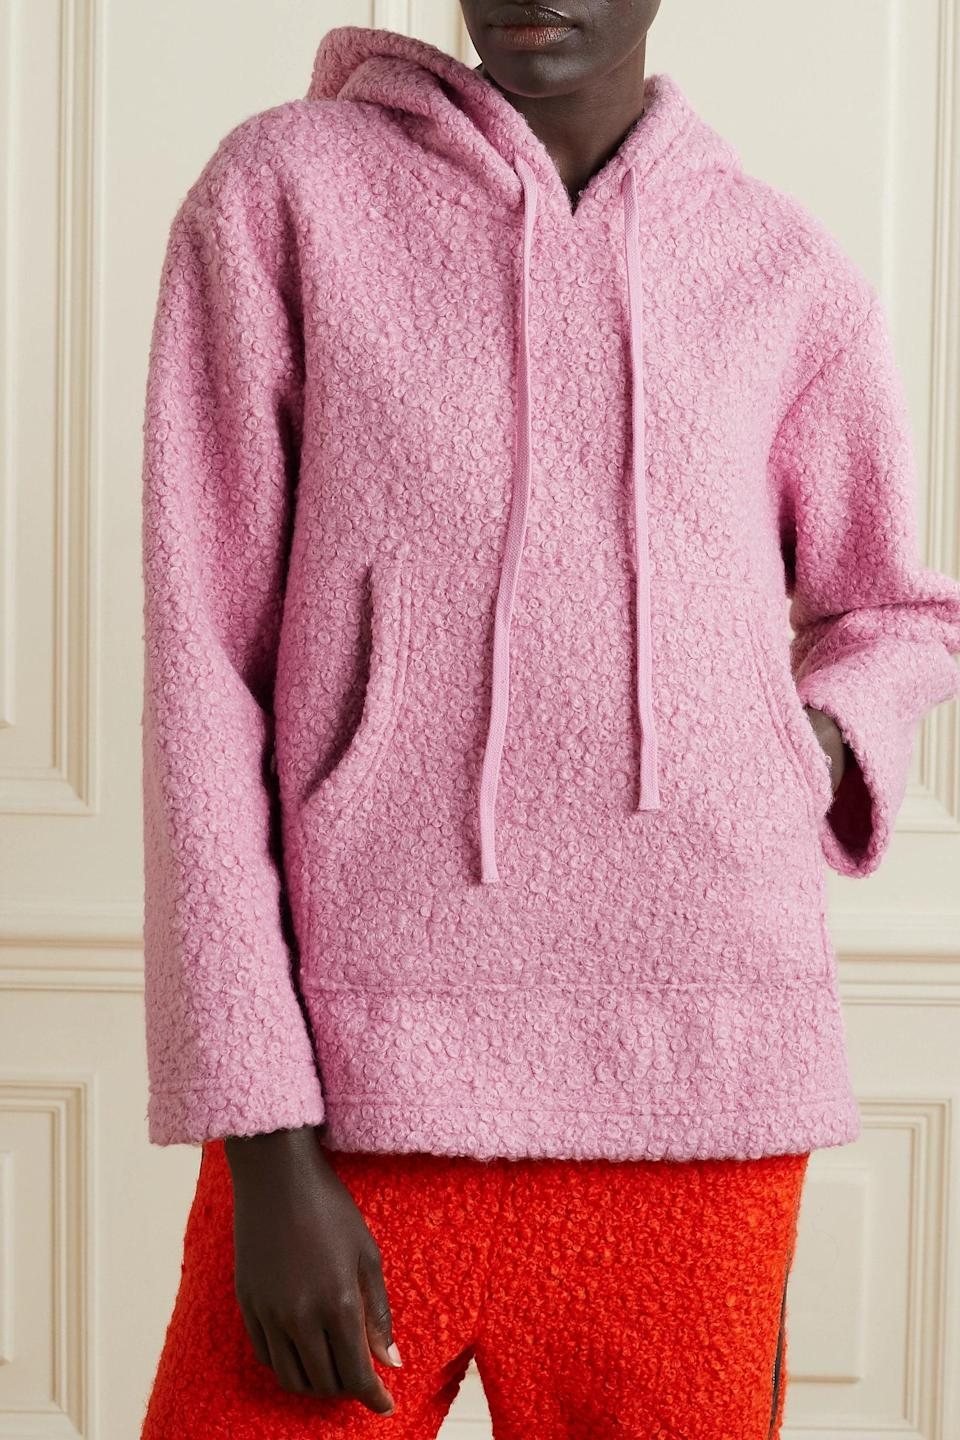 """Gloomy skies are no match to this bubblegum pink hoodie, perfect for brightening up even the most colorless of days. (Okay, and moods.) $245, Net-a-Porter. <a href=""""https://www.net-a-porter.com/en-us/shop/product/staud/clothing/sweatshirts/bear-fleece-hoodie/13452677153213223"""" rel=""""nofollow noopener"""" target=""""_blank"""" data-ylk=""""slk:Get it now!"""" class=""""link rapid-noclick-resp"""">Get it now!</a>"""